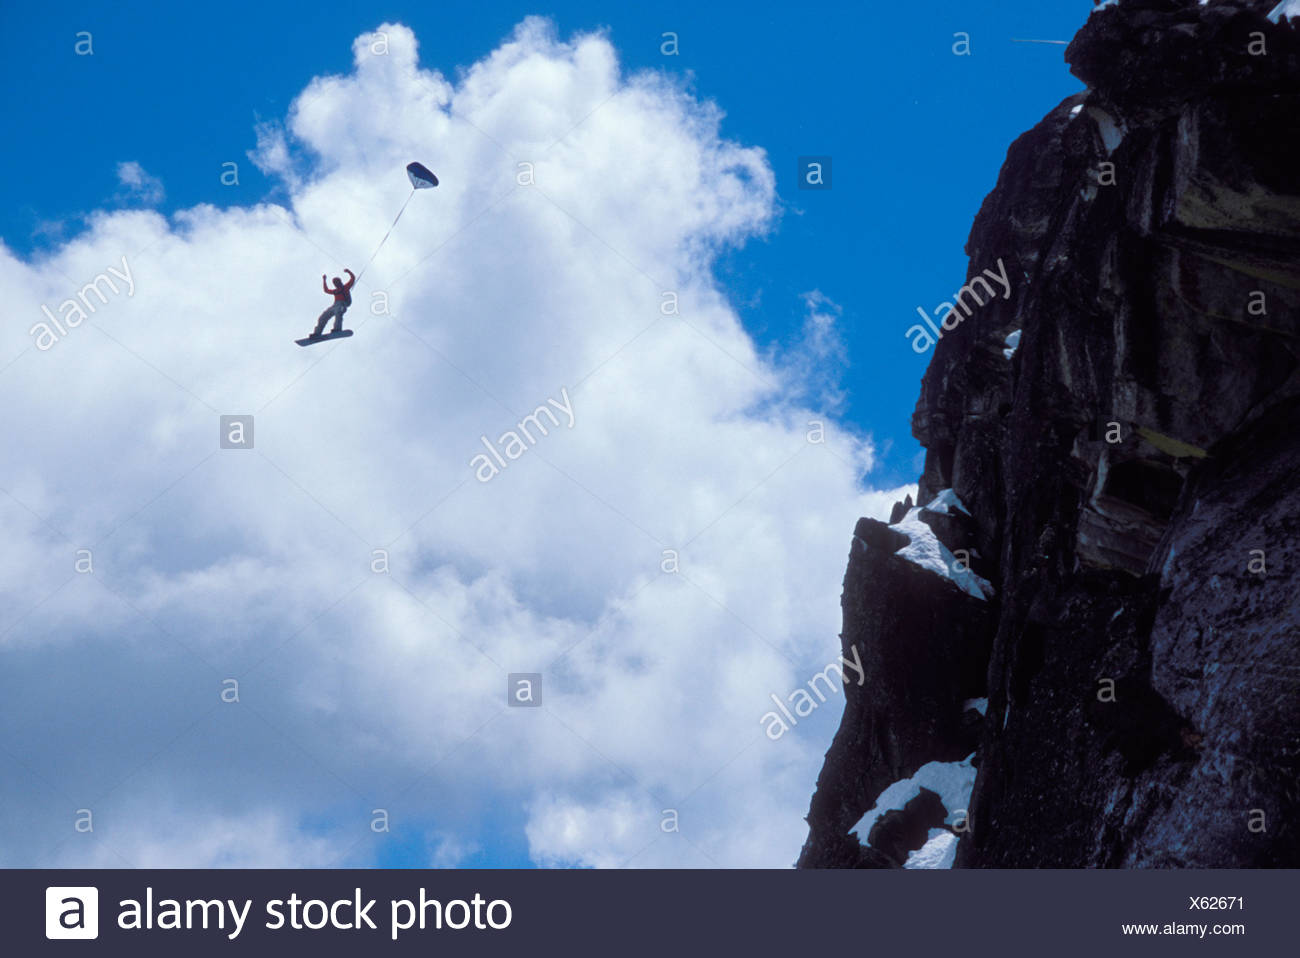 Snowboard-BASE jumper doing a backflip off a cliff near Lake Tahoe. - Stock Image